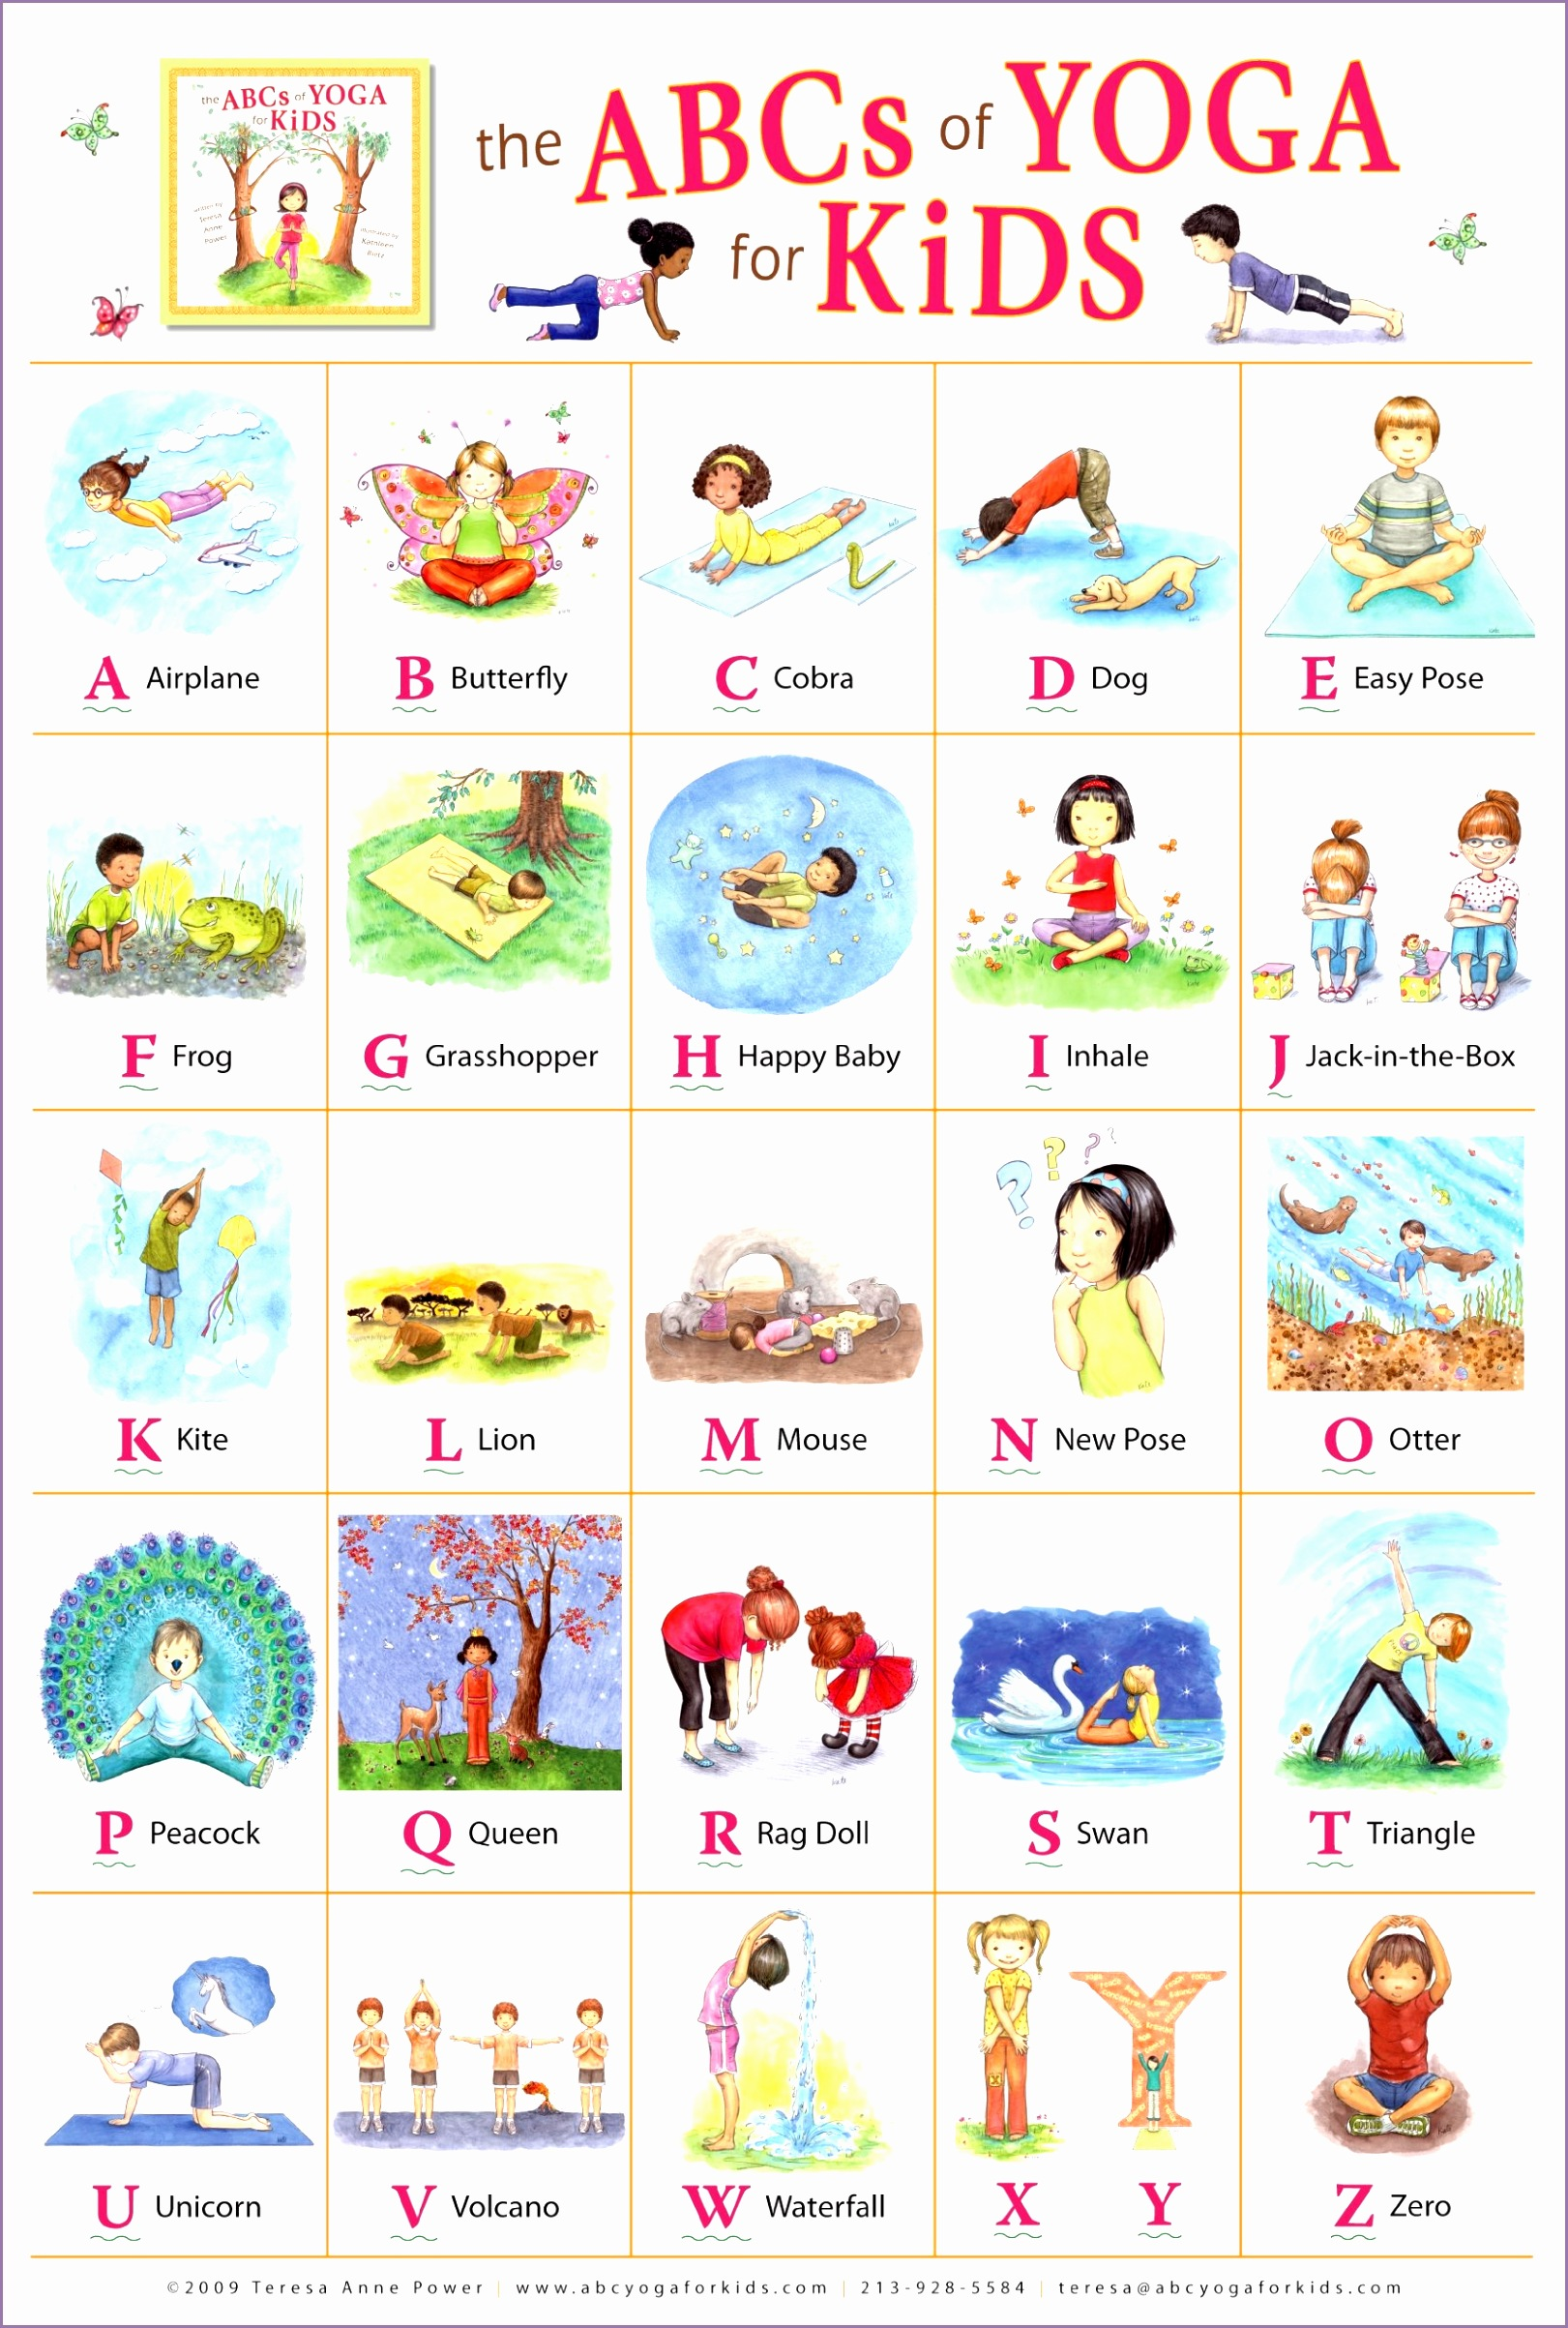 image relating to Free Printable Yoga Poses referred to as yoga poses for small children printable